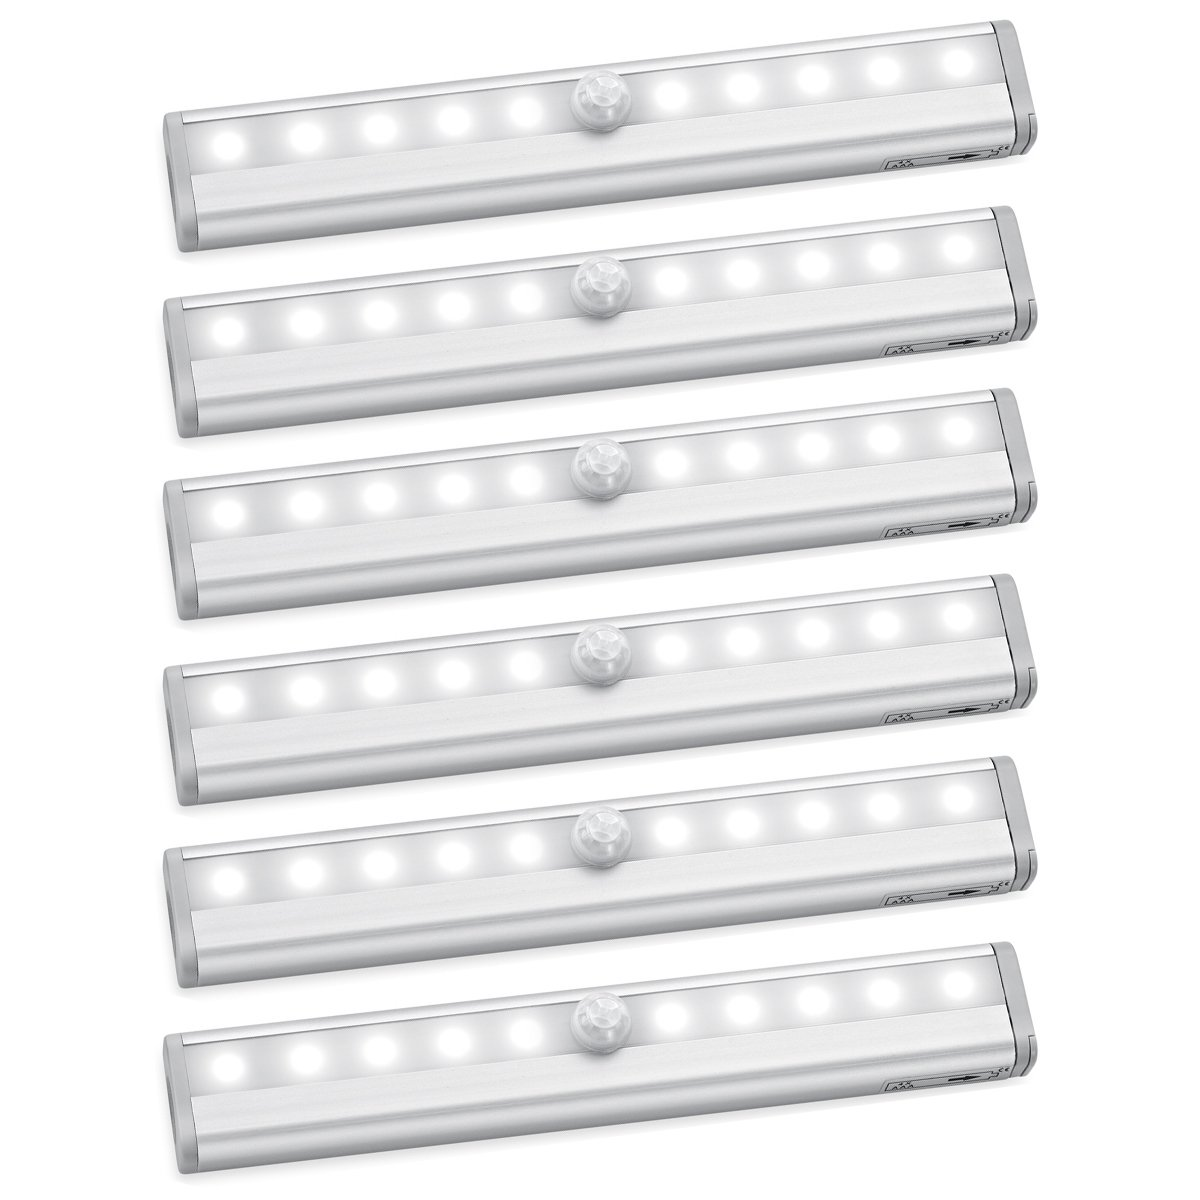 AMIR Motion Sensor Closet Lights, DIY Stick-on Anywhere Portable 10-LED Wireless Cabinet Night/Stairs/Step Light Bar with Magnetic Strip Battery Operated (Cool White - Pack of 6) by AMIR